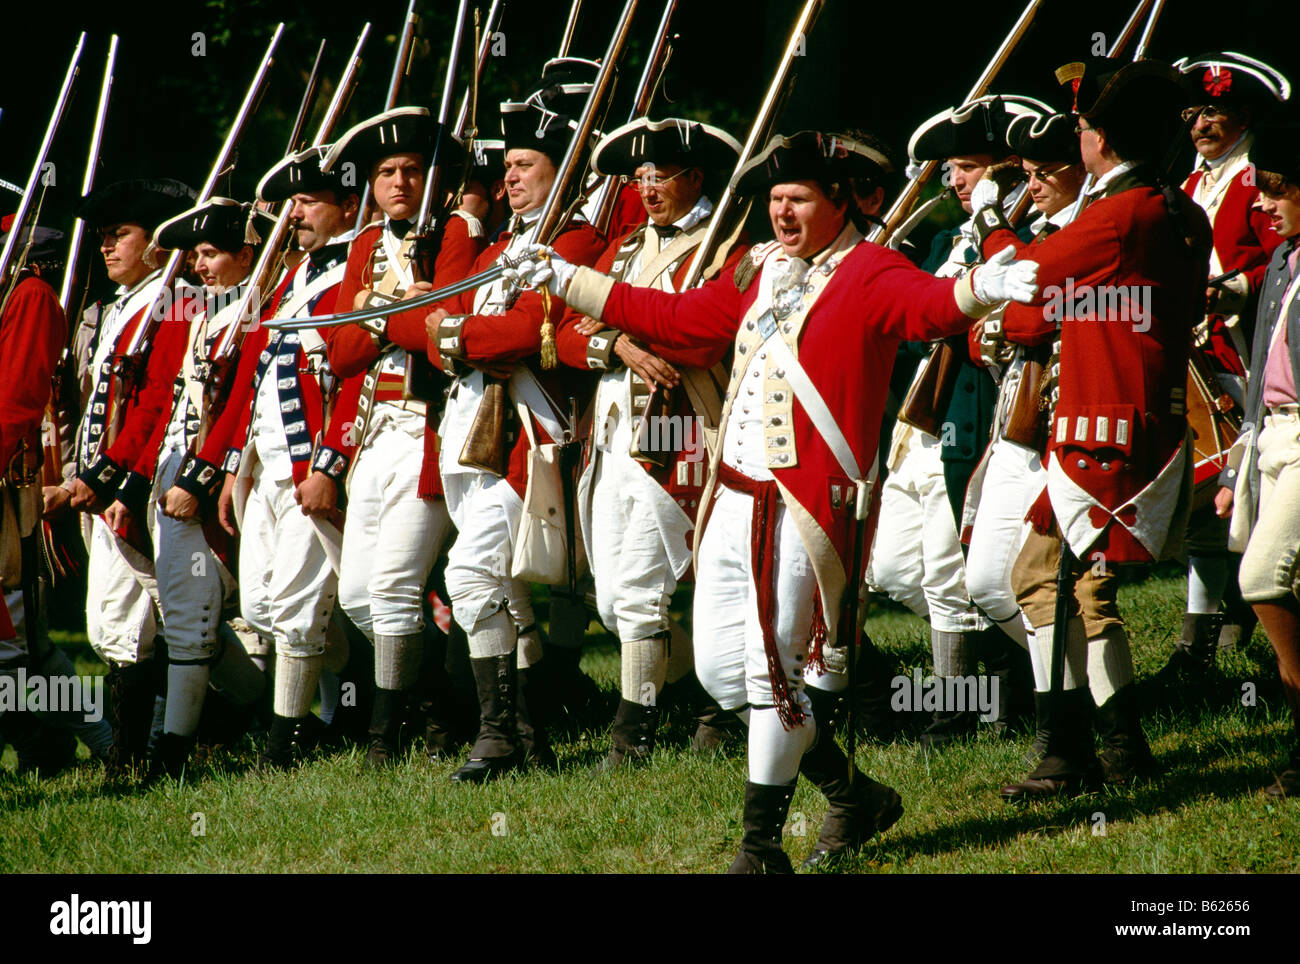 Red coat soldiers at a Revolutionary War encampment reenactment ...